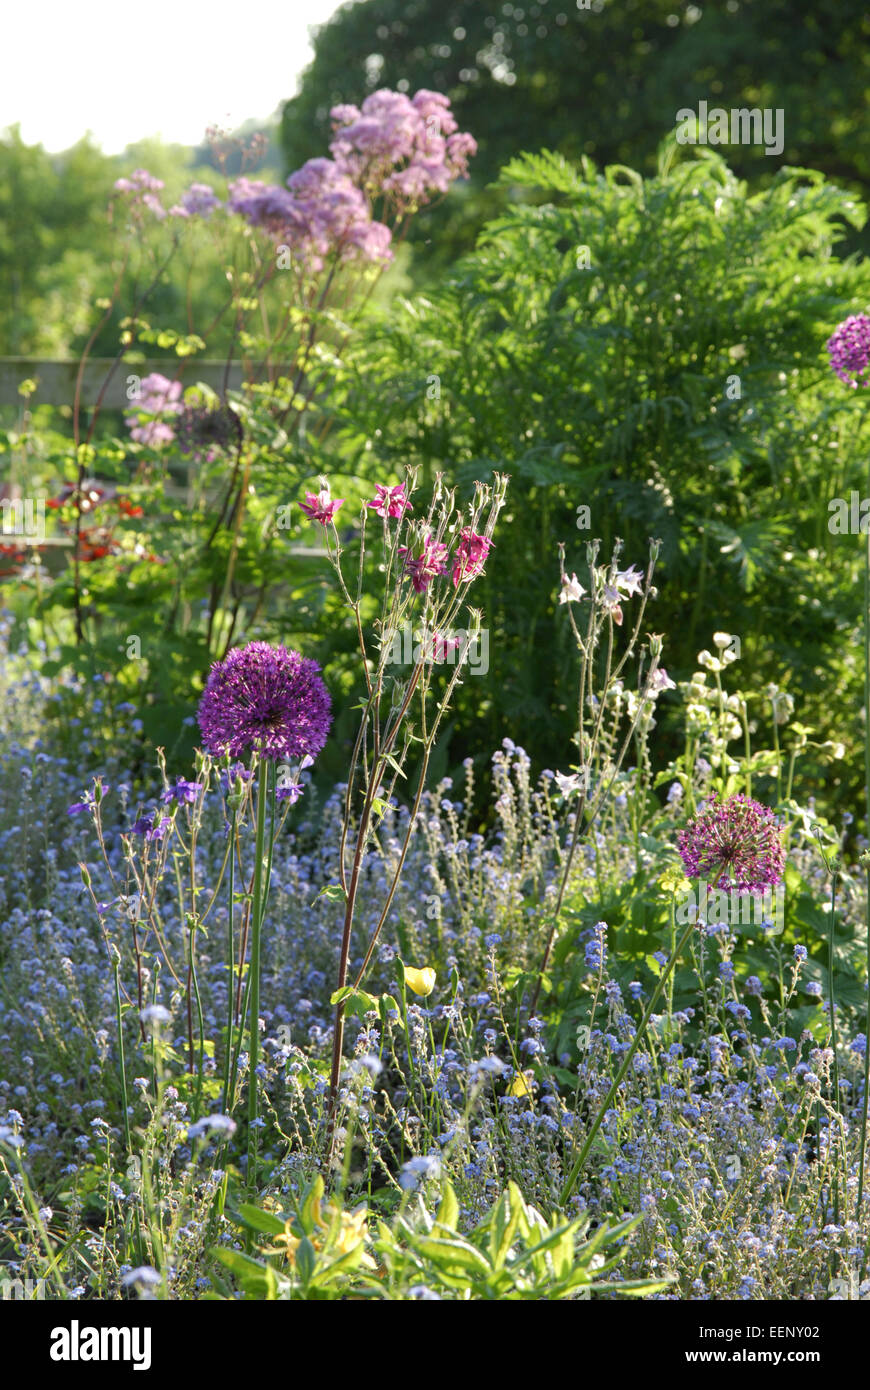 Mixed border in late spring with allium flowers, aquilegia and forget me not. - Stock Image